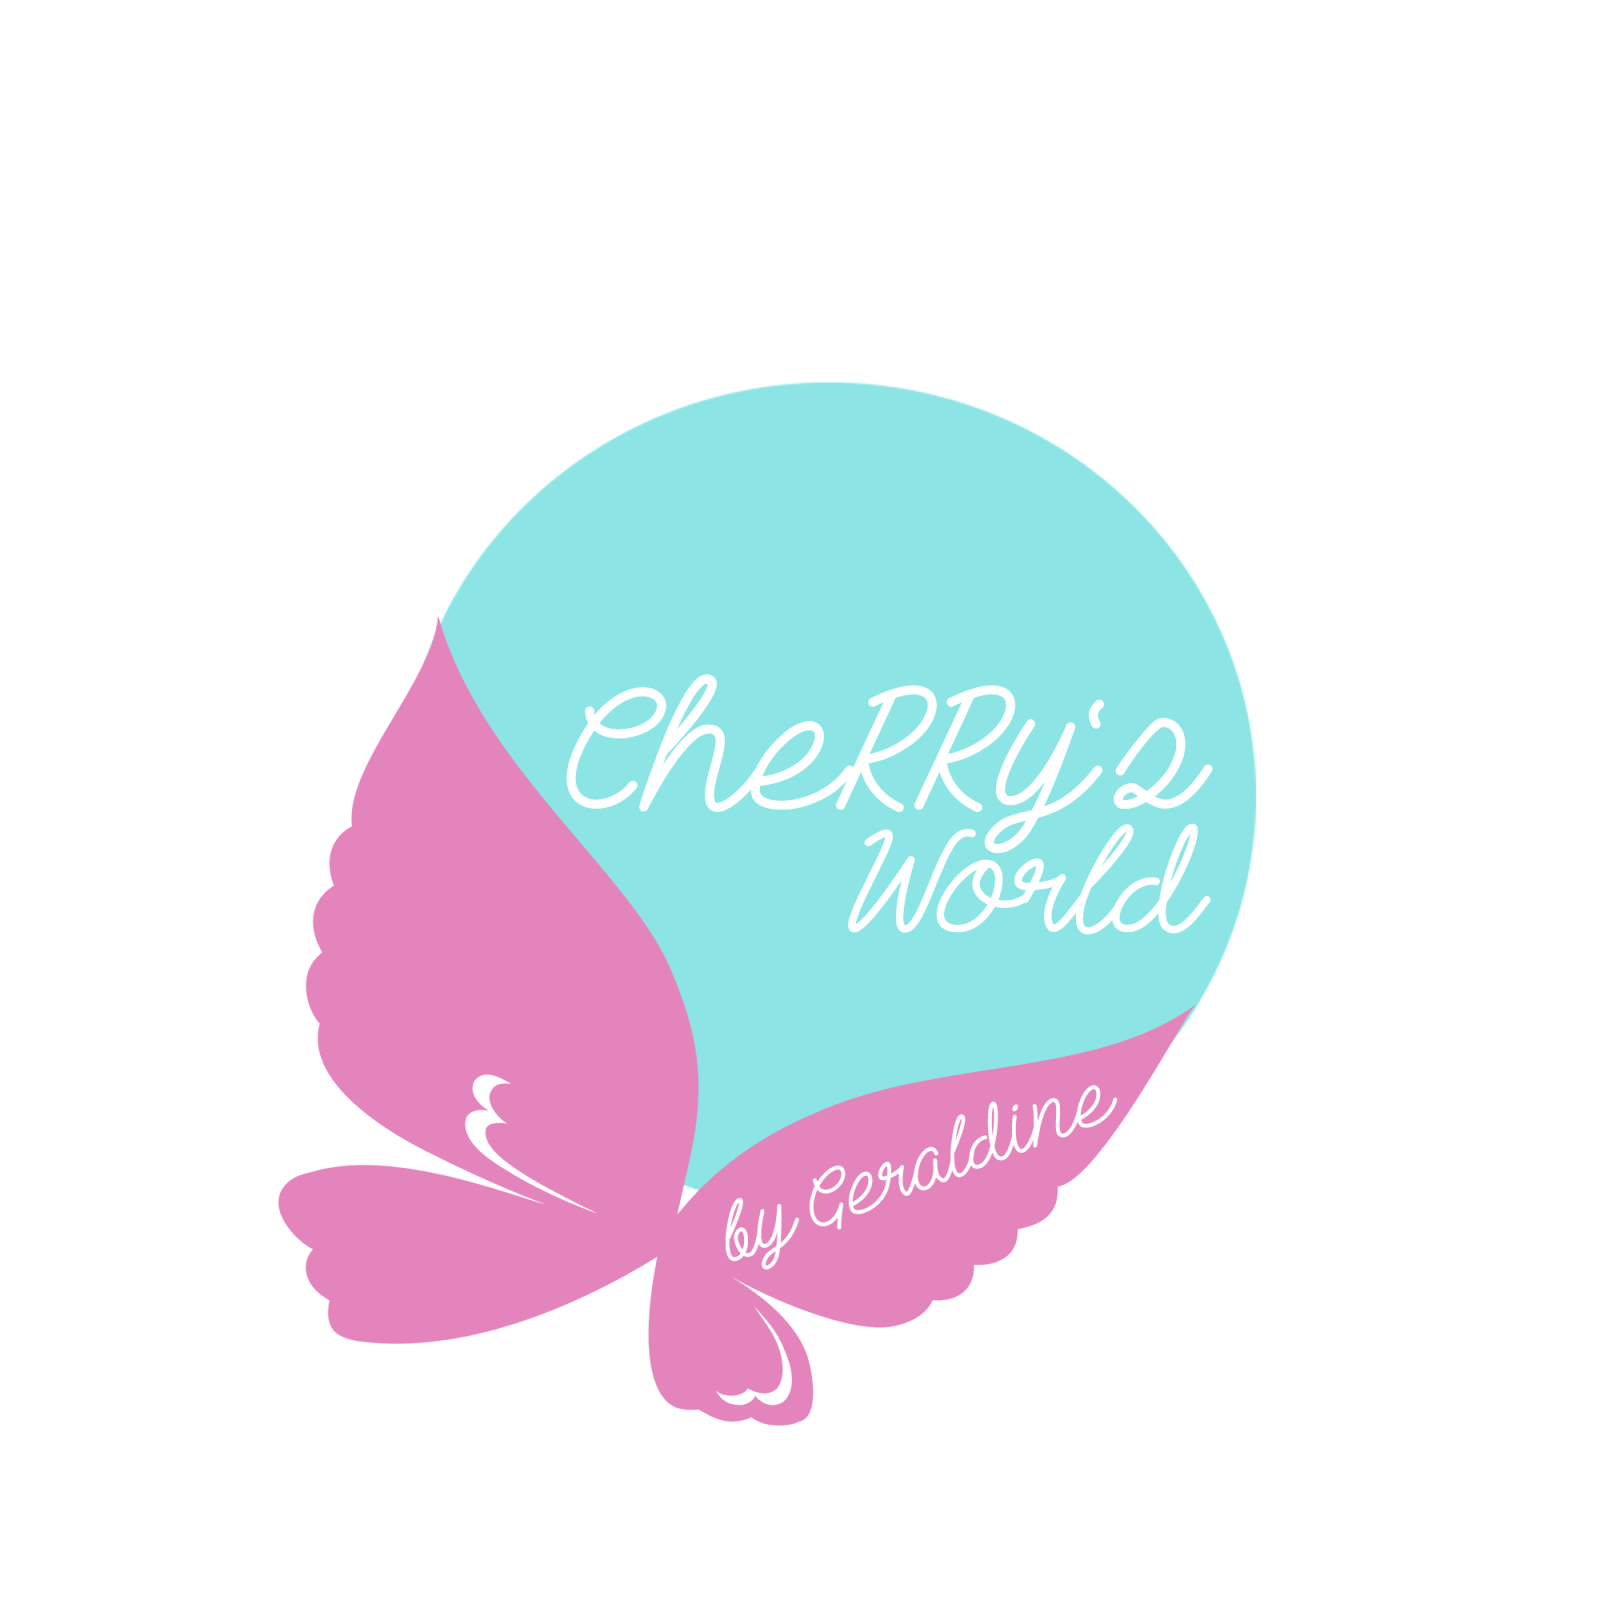 CheRRy's World by Geraldine